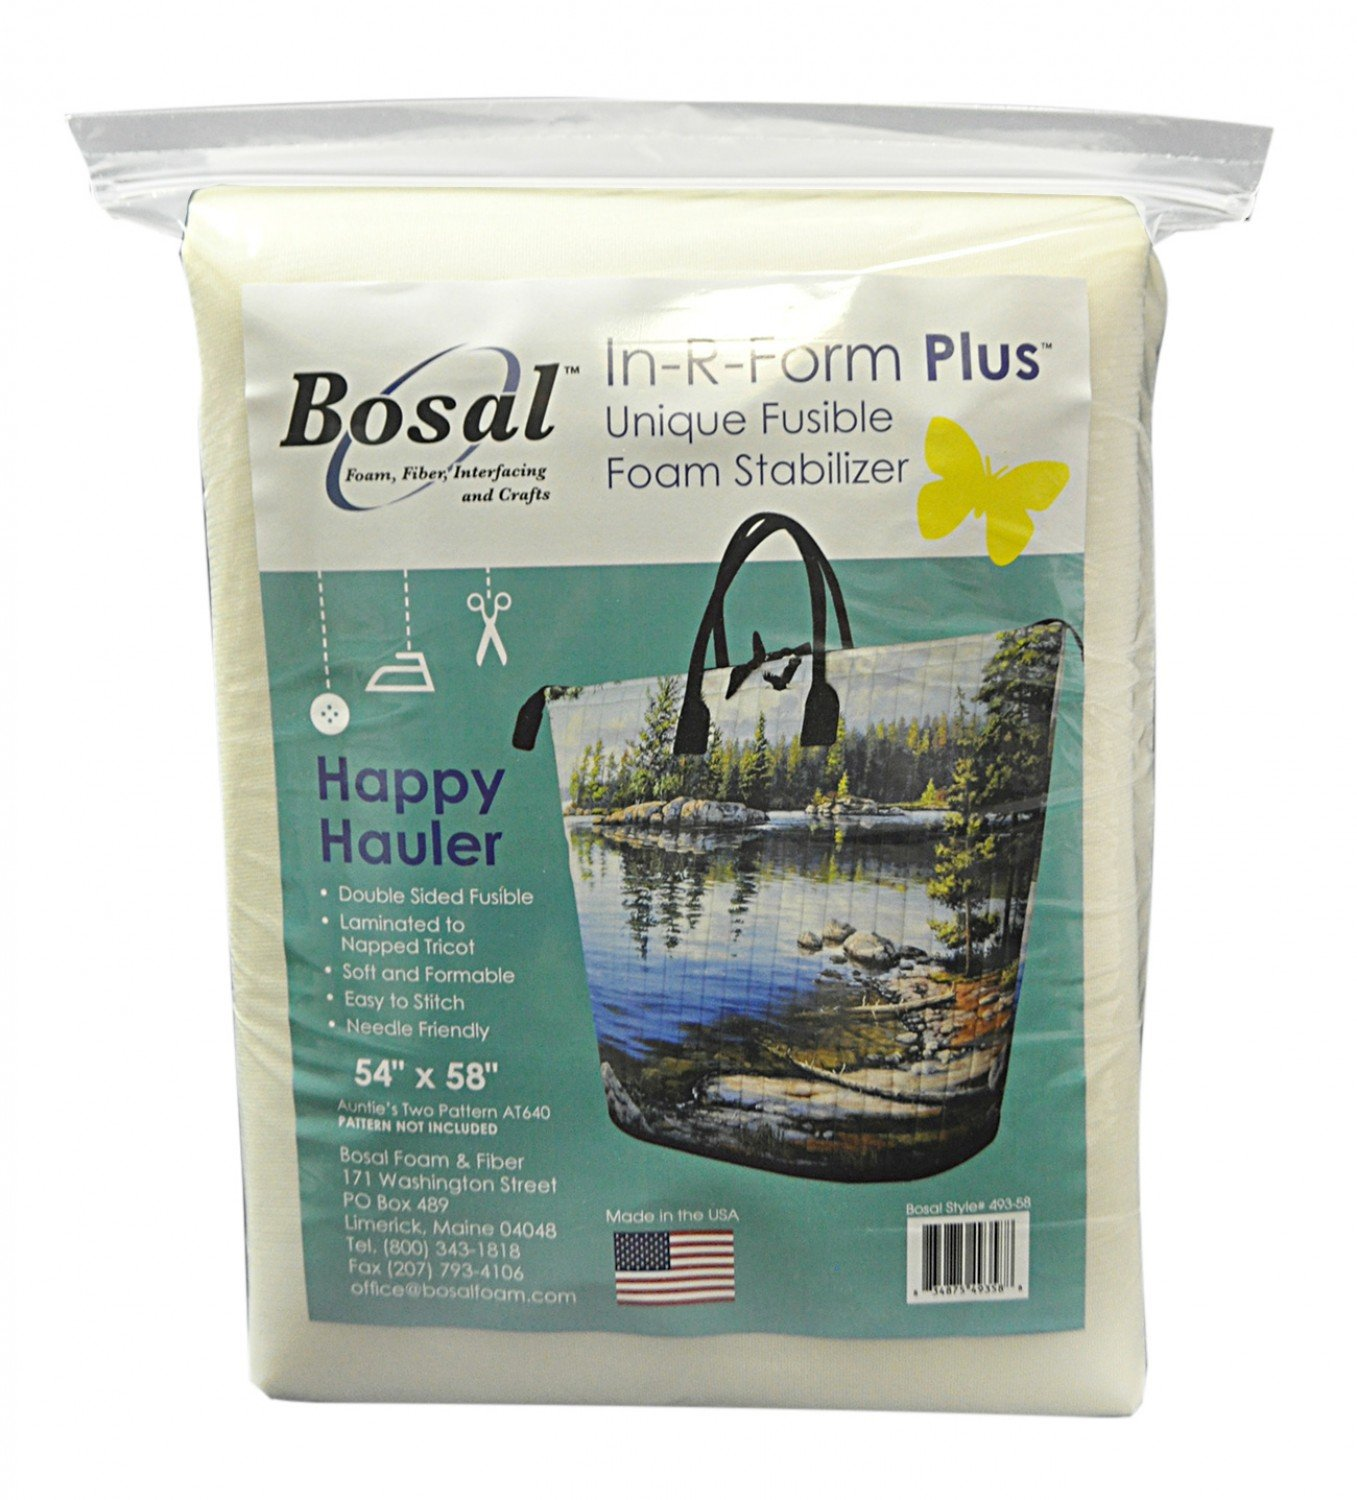 In-R-Form Plus 54 x 58  Happy Hauler Precut Double Sided Fusible 493B-58